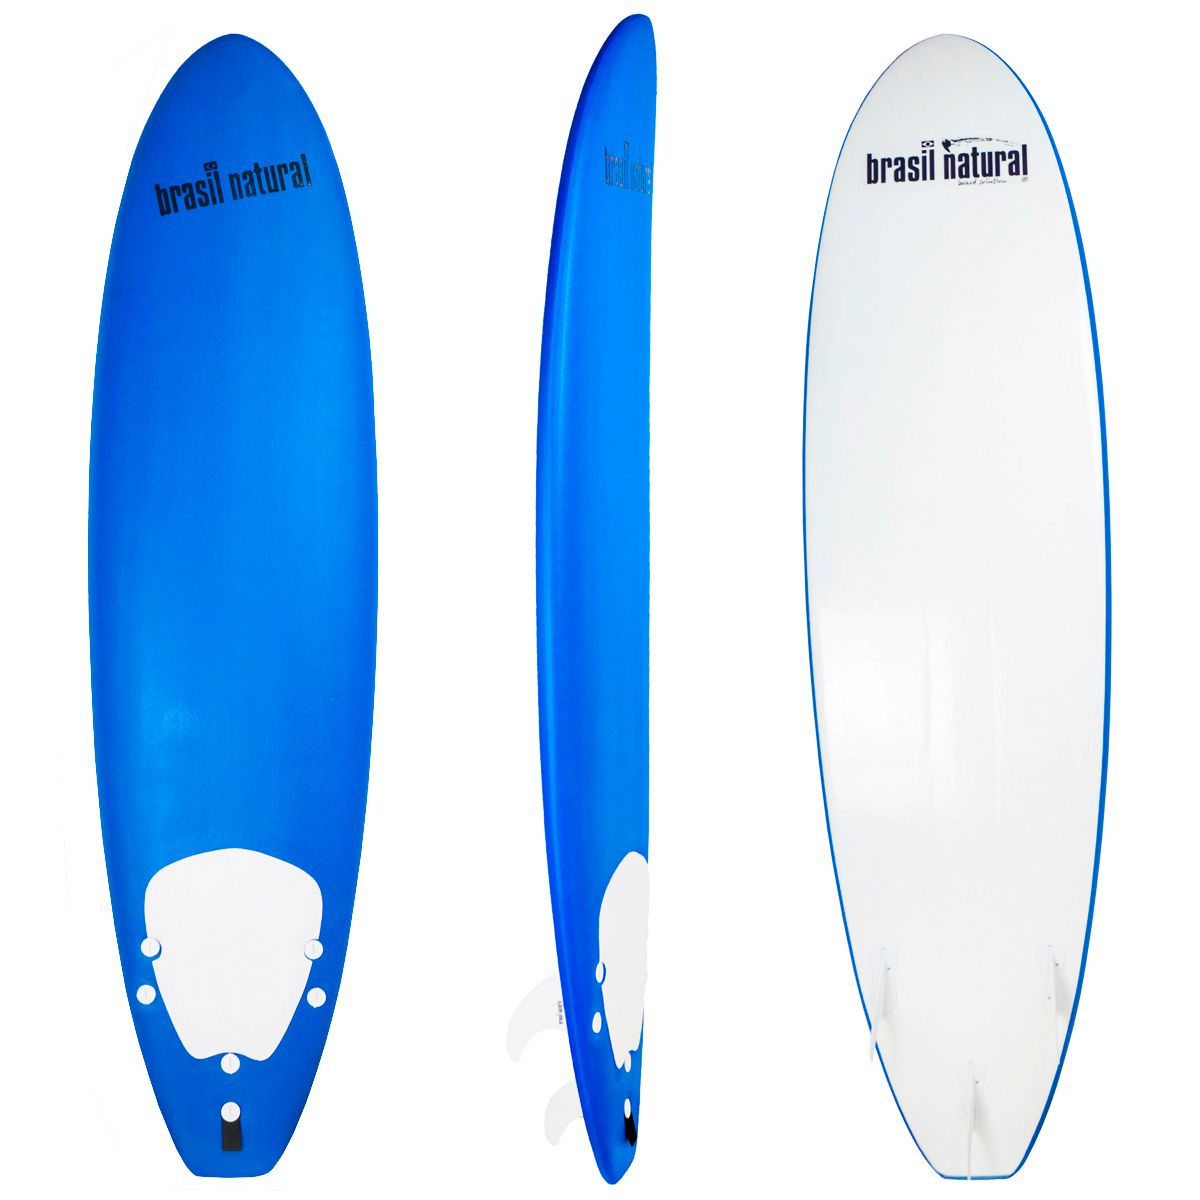 Prancha de surf infantil 5.8 NEW EDITION + kit surf - Brasil Natural